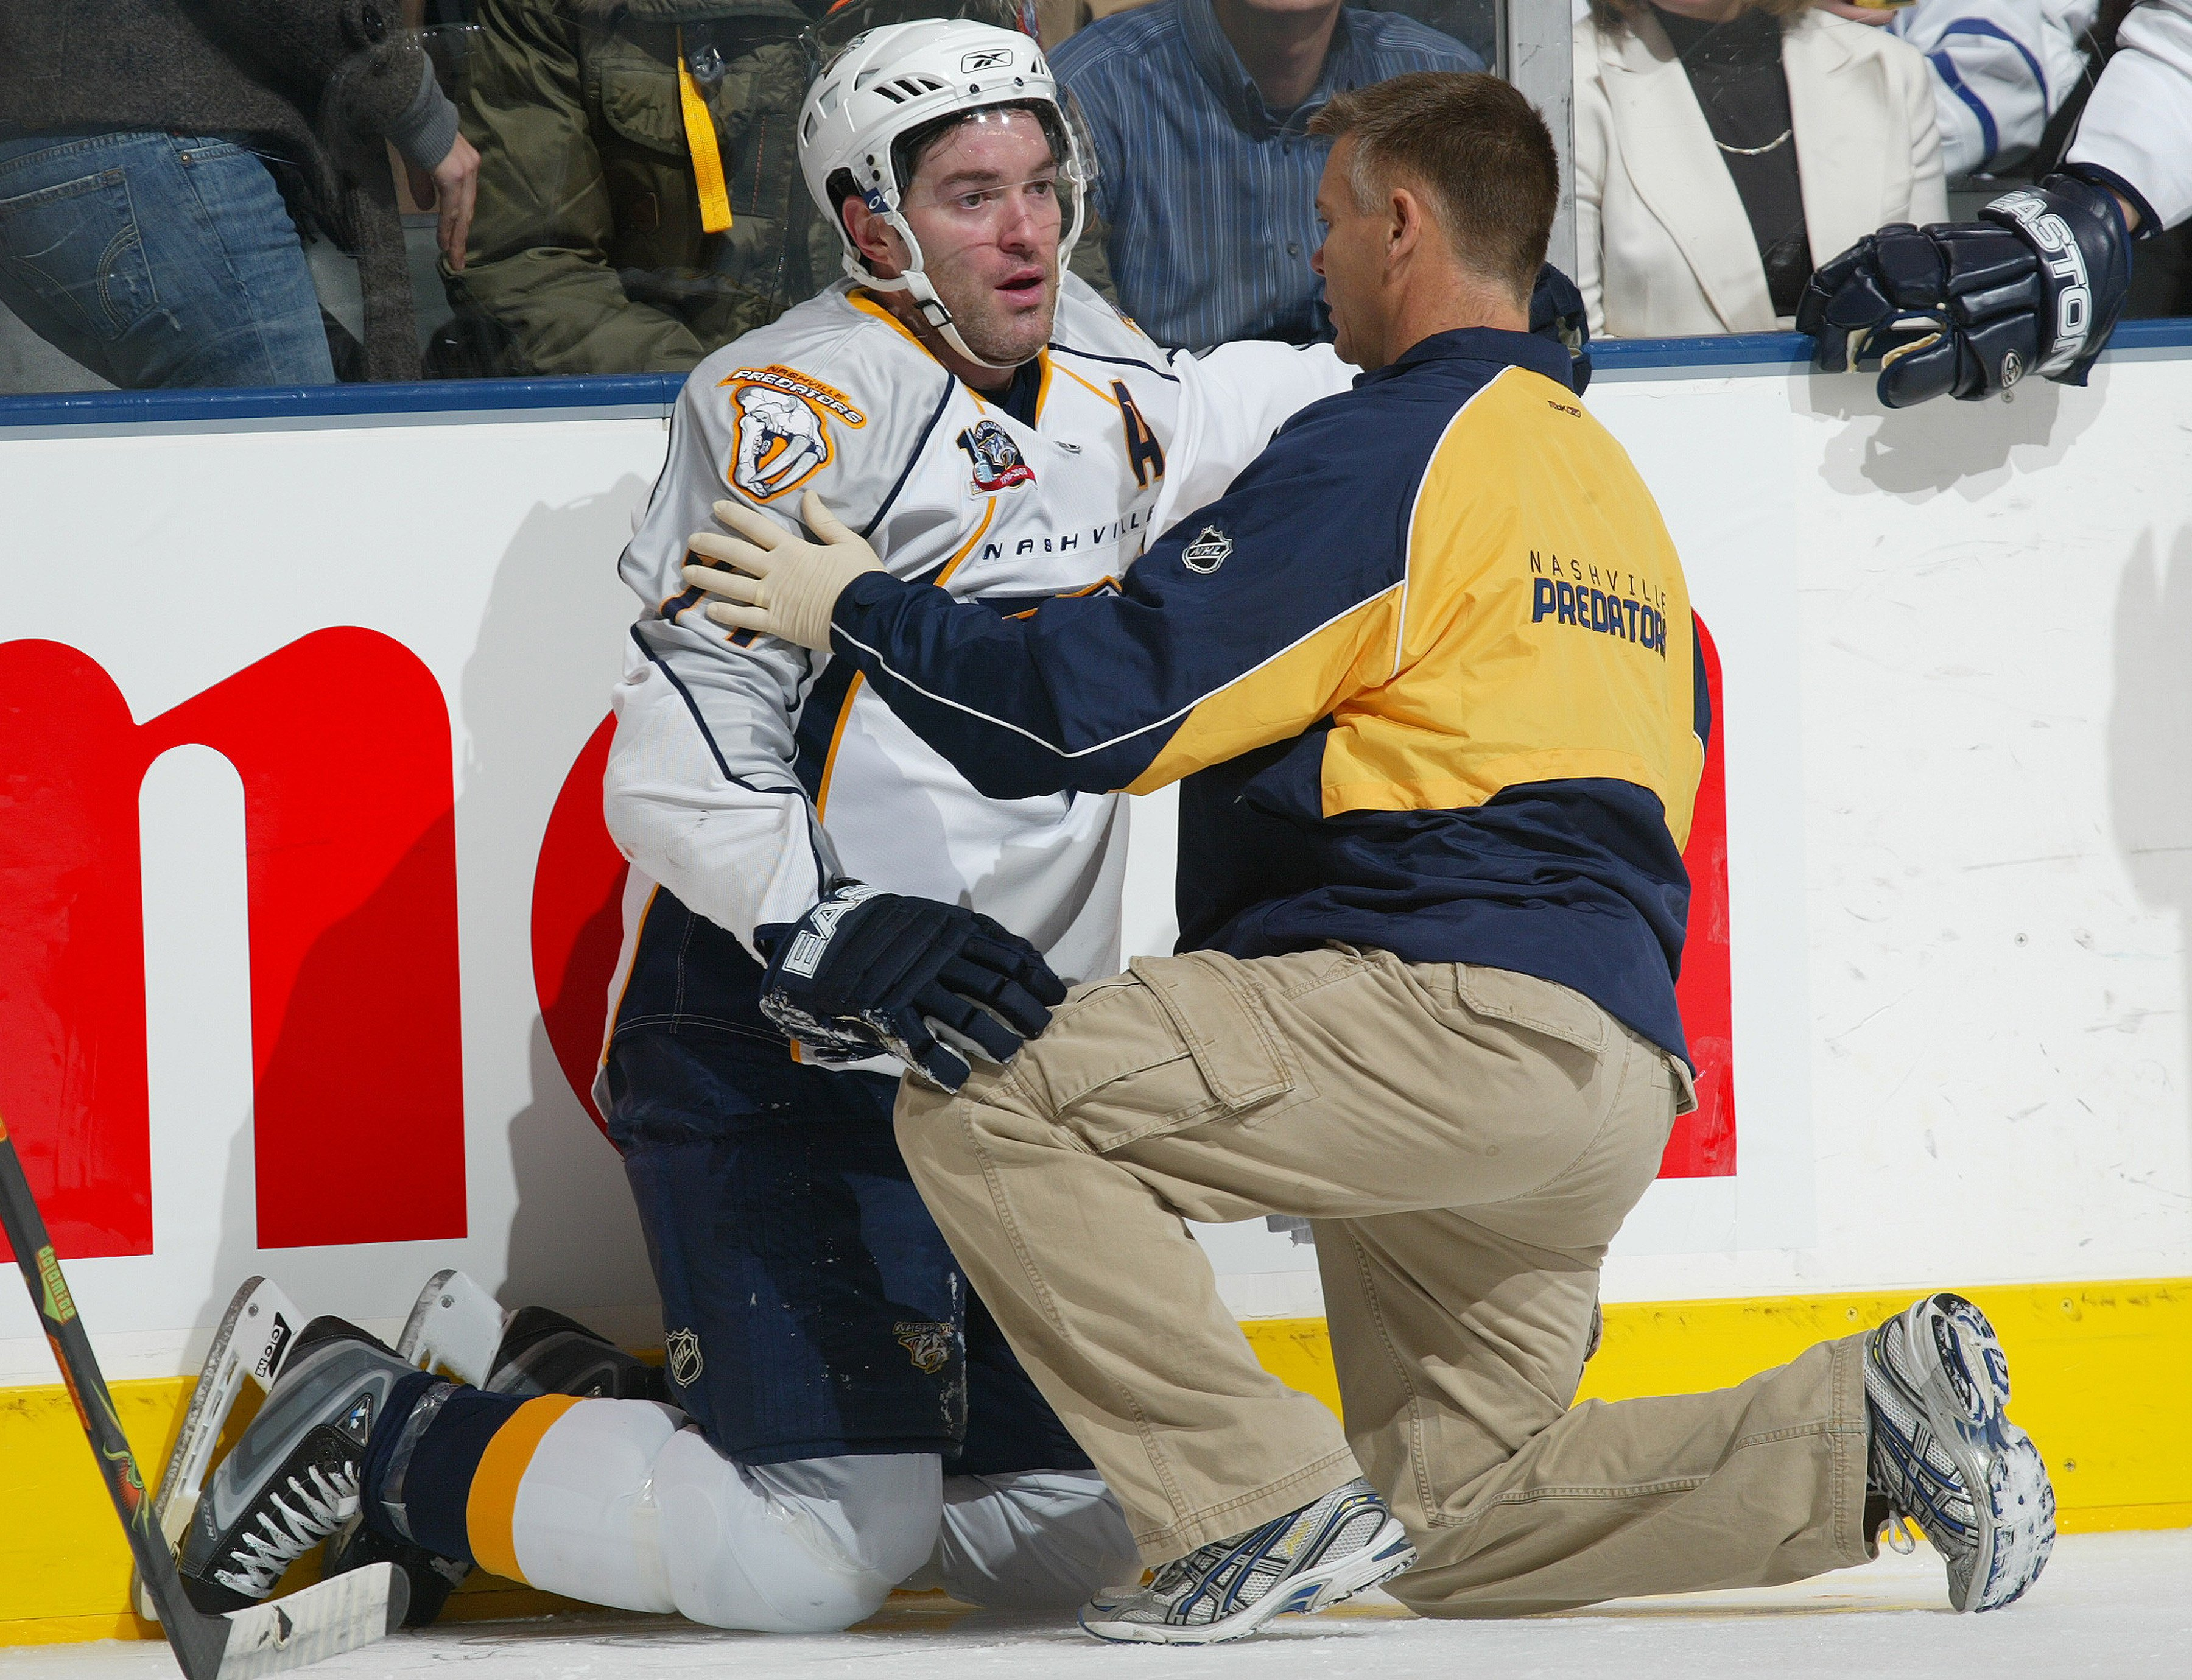 TORONTO - DECEMBER 4:  J.P. Dumont #71 of the Nashville Predators appears stunned after taking a big hit from Hal Gill #25 of the Toronto Maple Leafs in a game on December 4, 2007 at the Air Canada Centre in Toronto, Ontario. The Maple Leafs defeated the